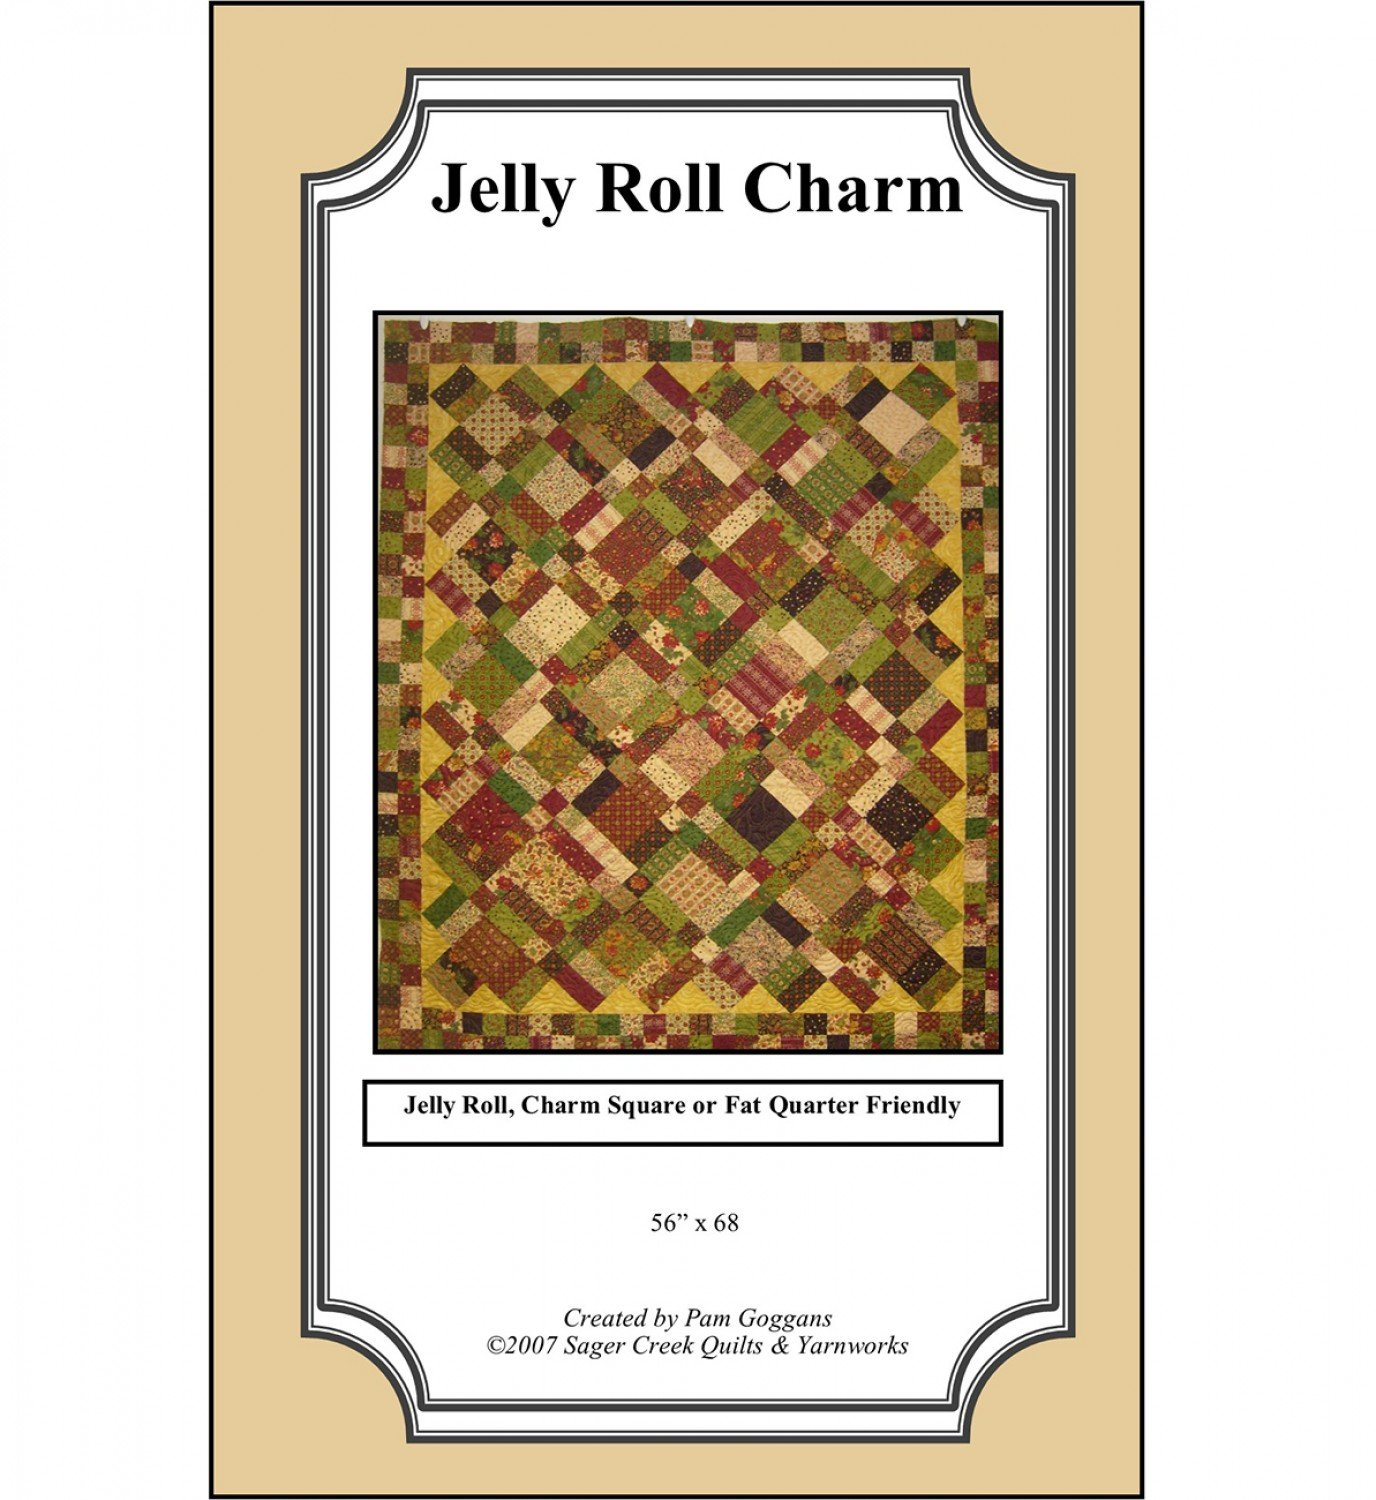 Jelly Roll Charm